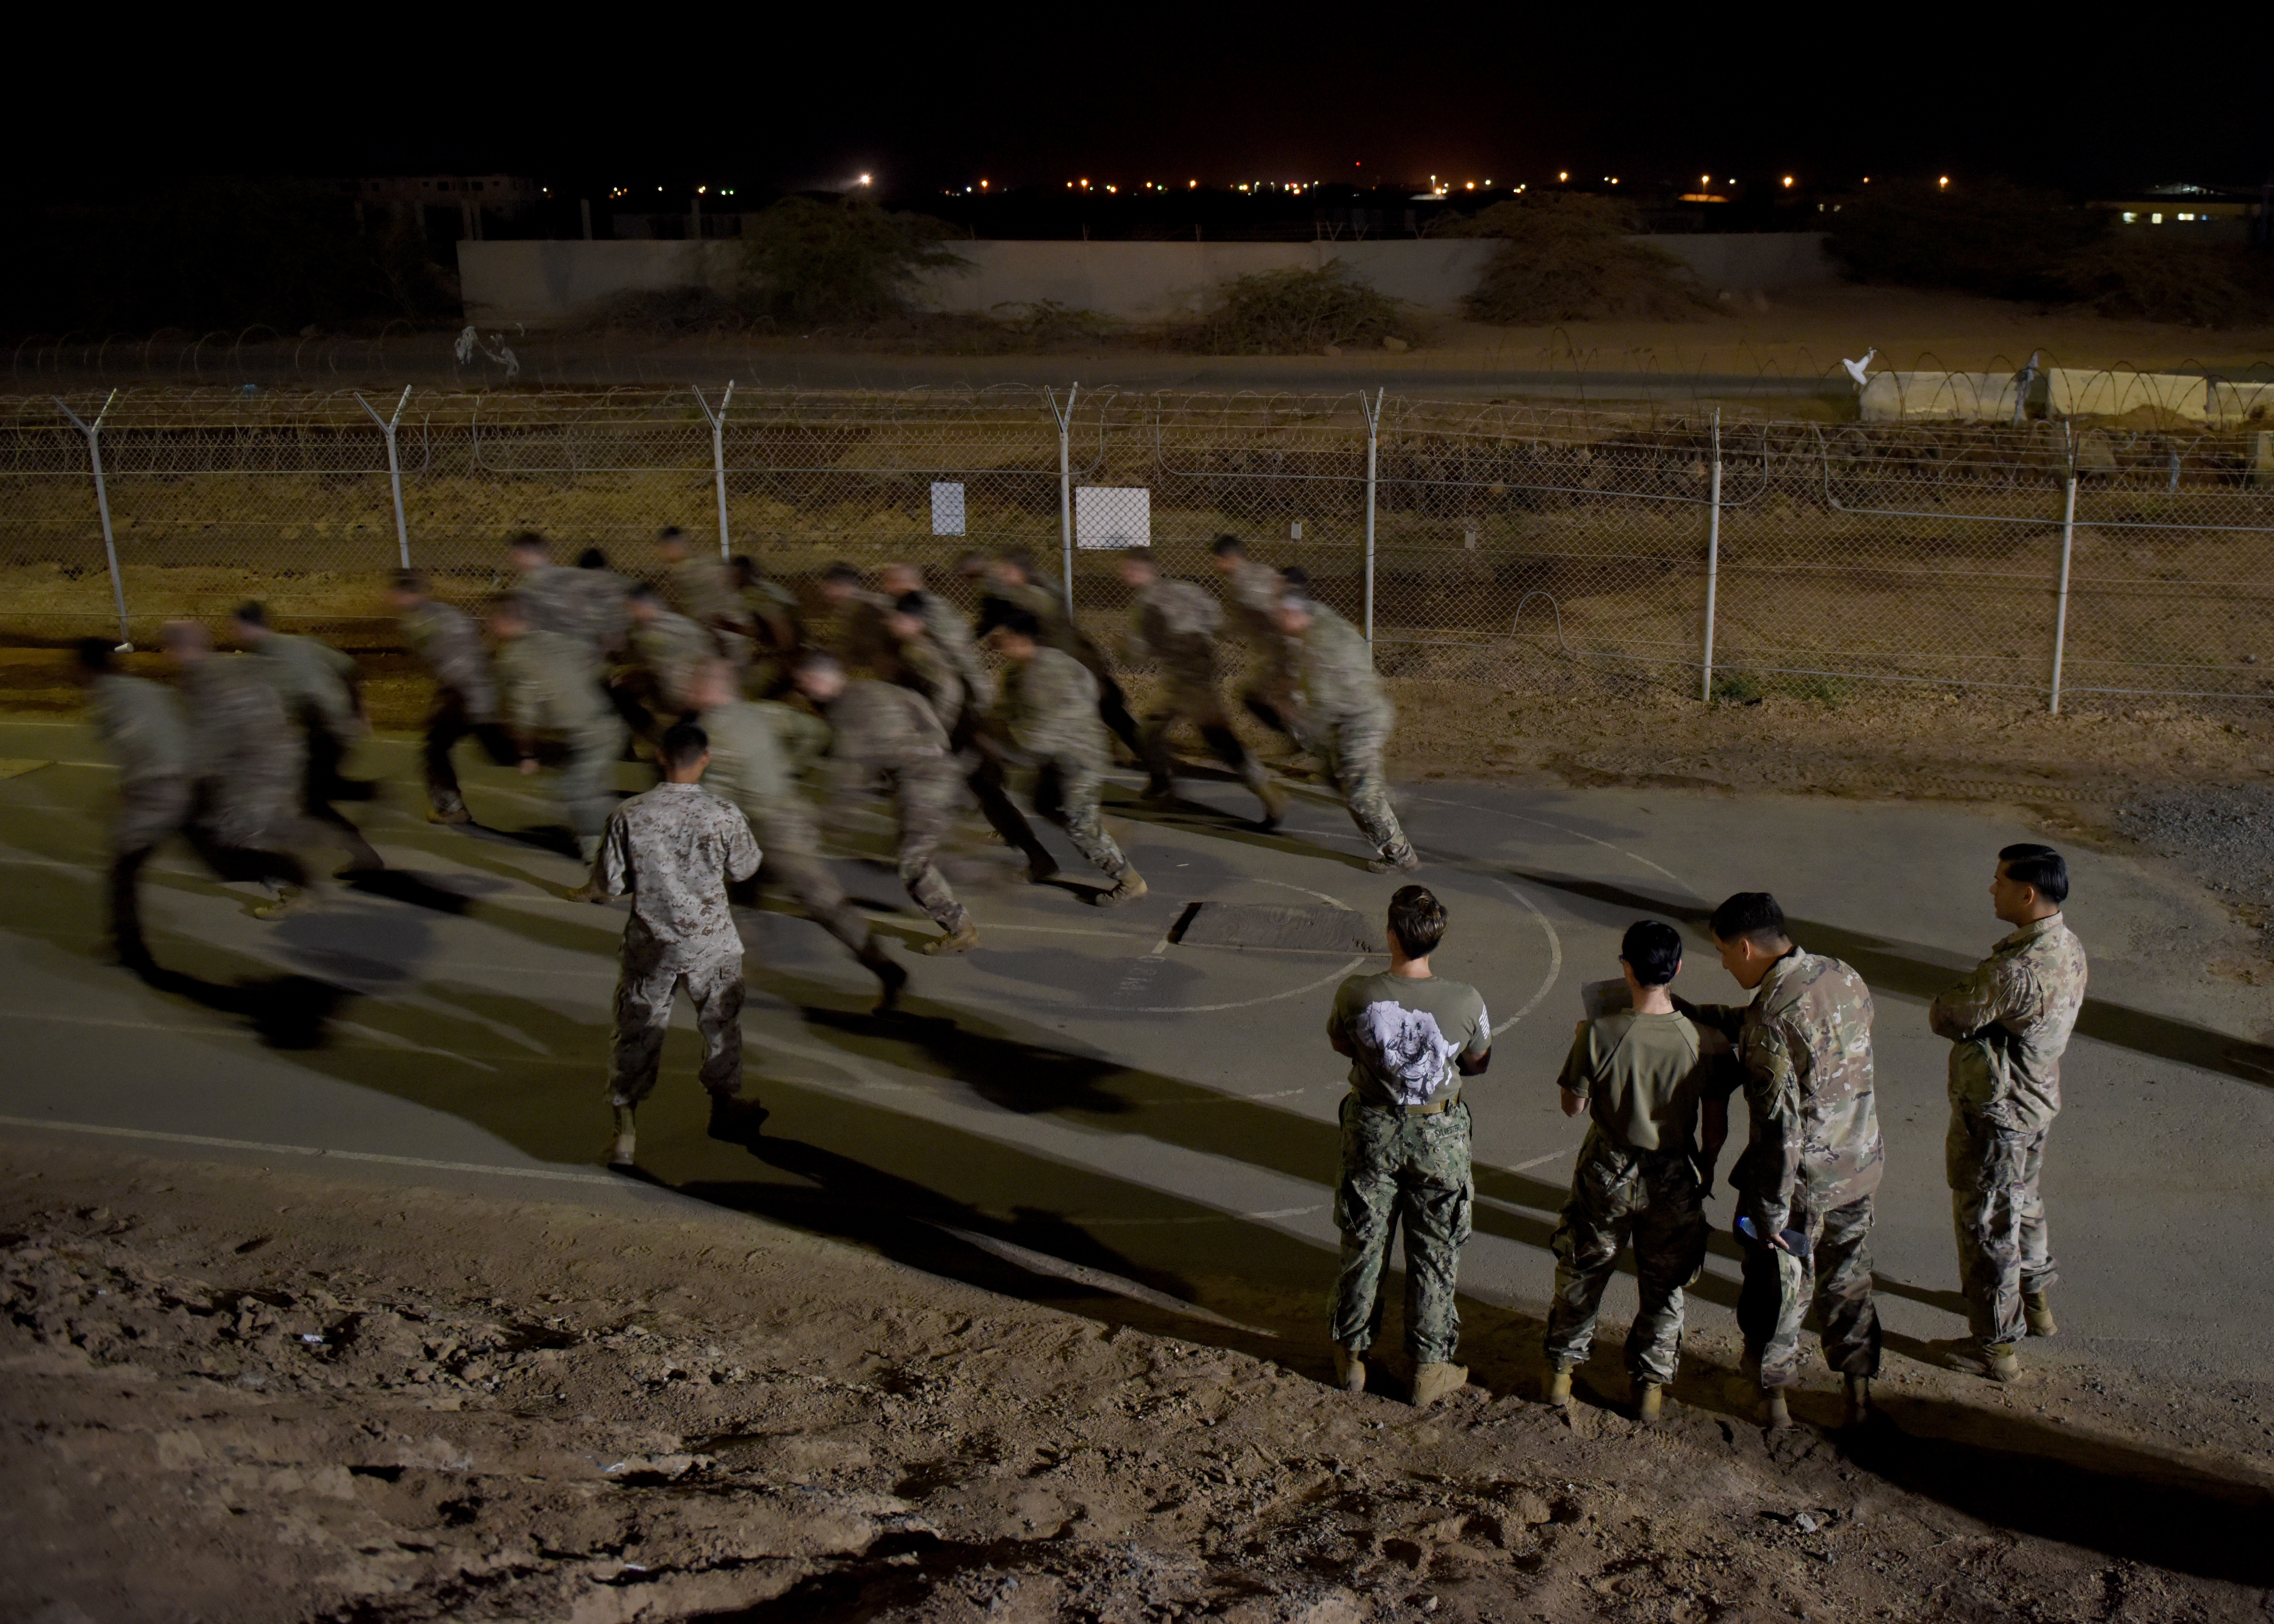 U.S. Army Soldiers, assigned to Combined Joint Task Force-Horn of Africa (CJTF-HOA), start the U.S. Marine Corps combat fitness test (CFT) portion of the Joint Warrior Competition at Camp Lemonnier, Djibouti, March 1, 2019. The CFT, which consisted of an 880-meter run, 2-minute ammo can lift and a maneuver under fire course, was part of the four-day competition that was open to U.S. service members assigned to CJTF-HOA and Camp Lemonnier. (U.S. Air Force Photo by Staff Sgt. Franklin R. Ramos)